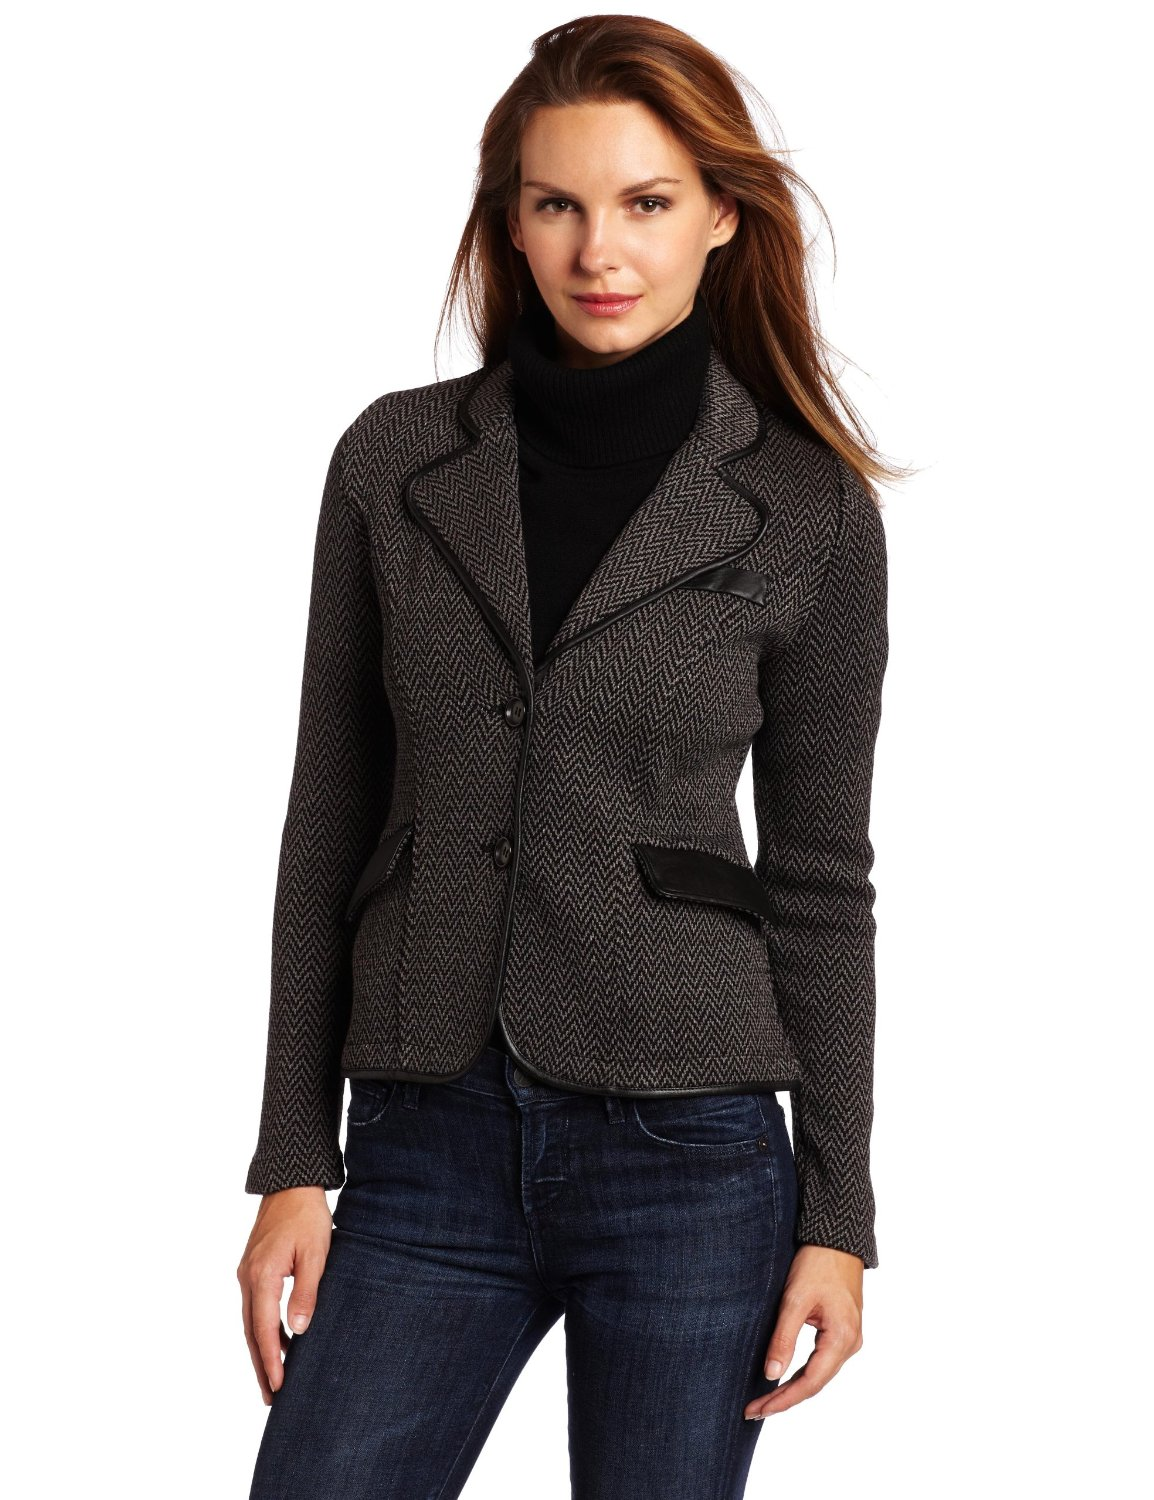 Find a great selection of women's blazers & jackets at gusajigadexe.cf Shop top brands like Vince Camuto, Topshop, Lafayette and more. Free shipping and returns.